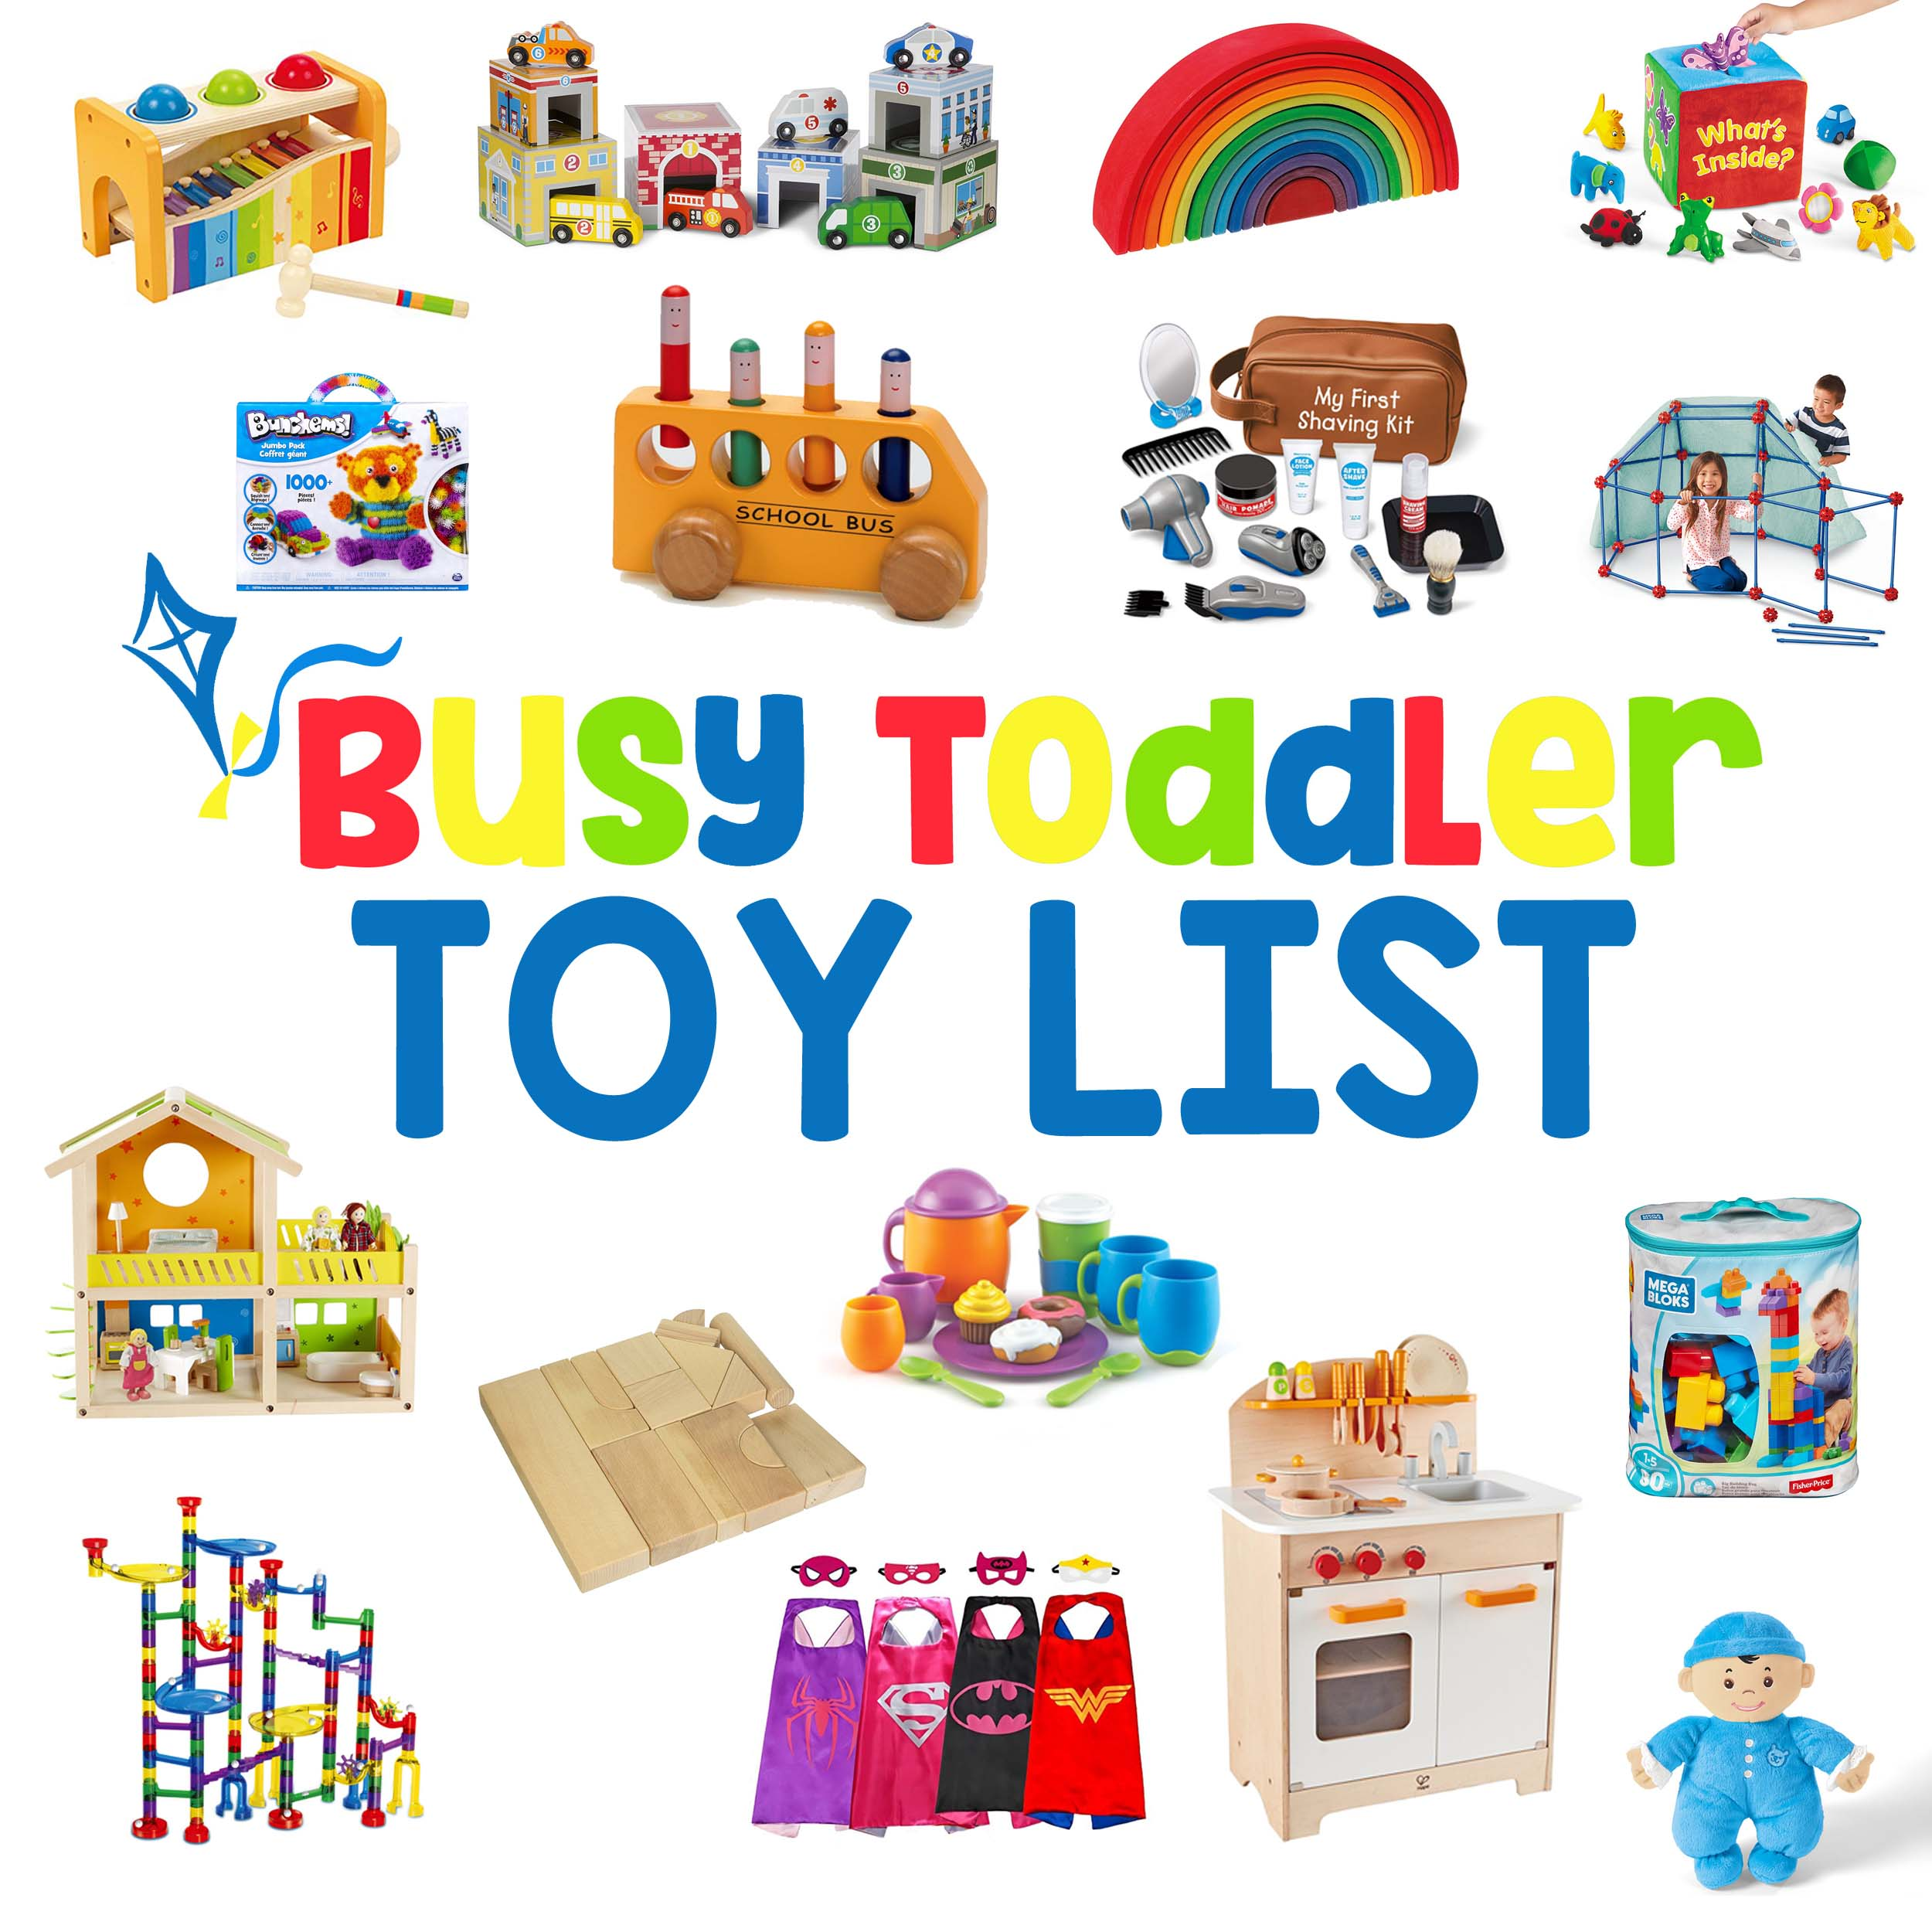 BEST TOYS FOR TODDLERS: Here it is - the most complete list of open ended toys for kids; best toys for one year olds; best toys for toddlers; best toys for preschoolers; best toys for five year old; open-ended toys; good toys; holiday gift guide; Christmas gifts for kids from Busy Toddler